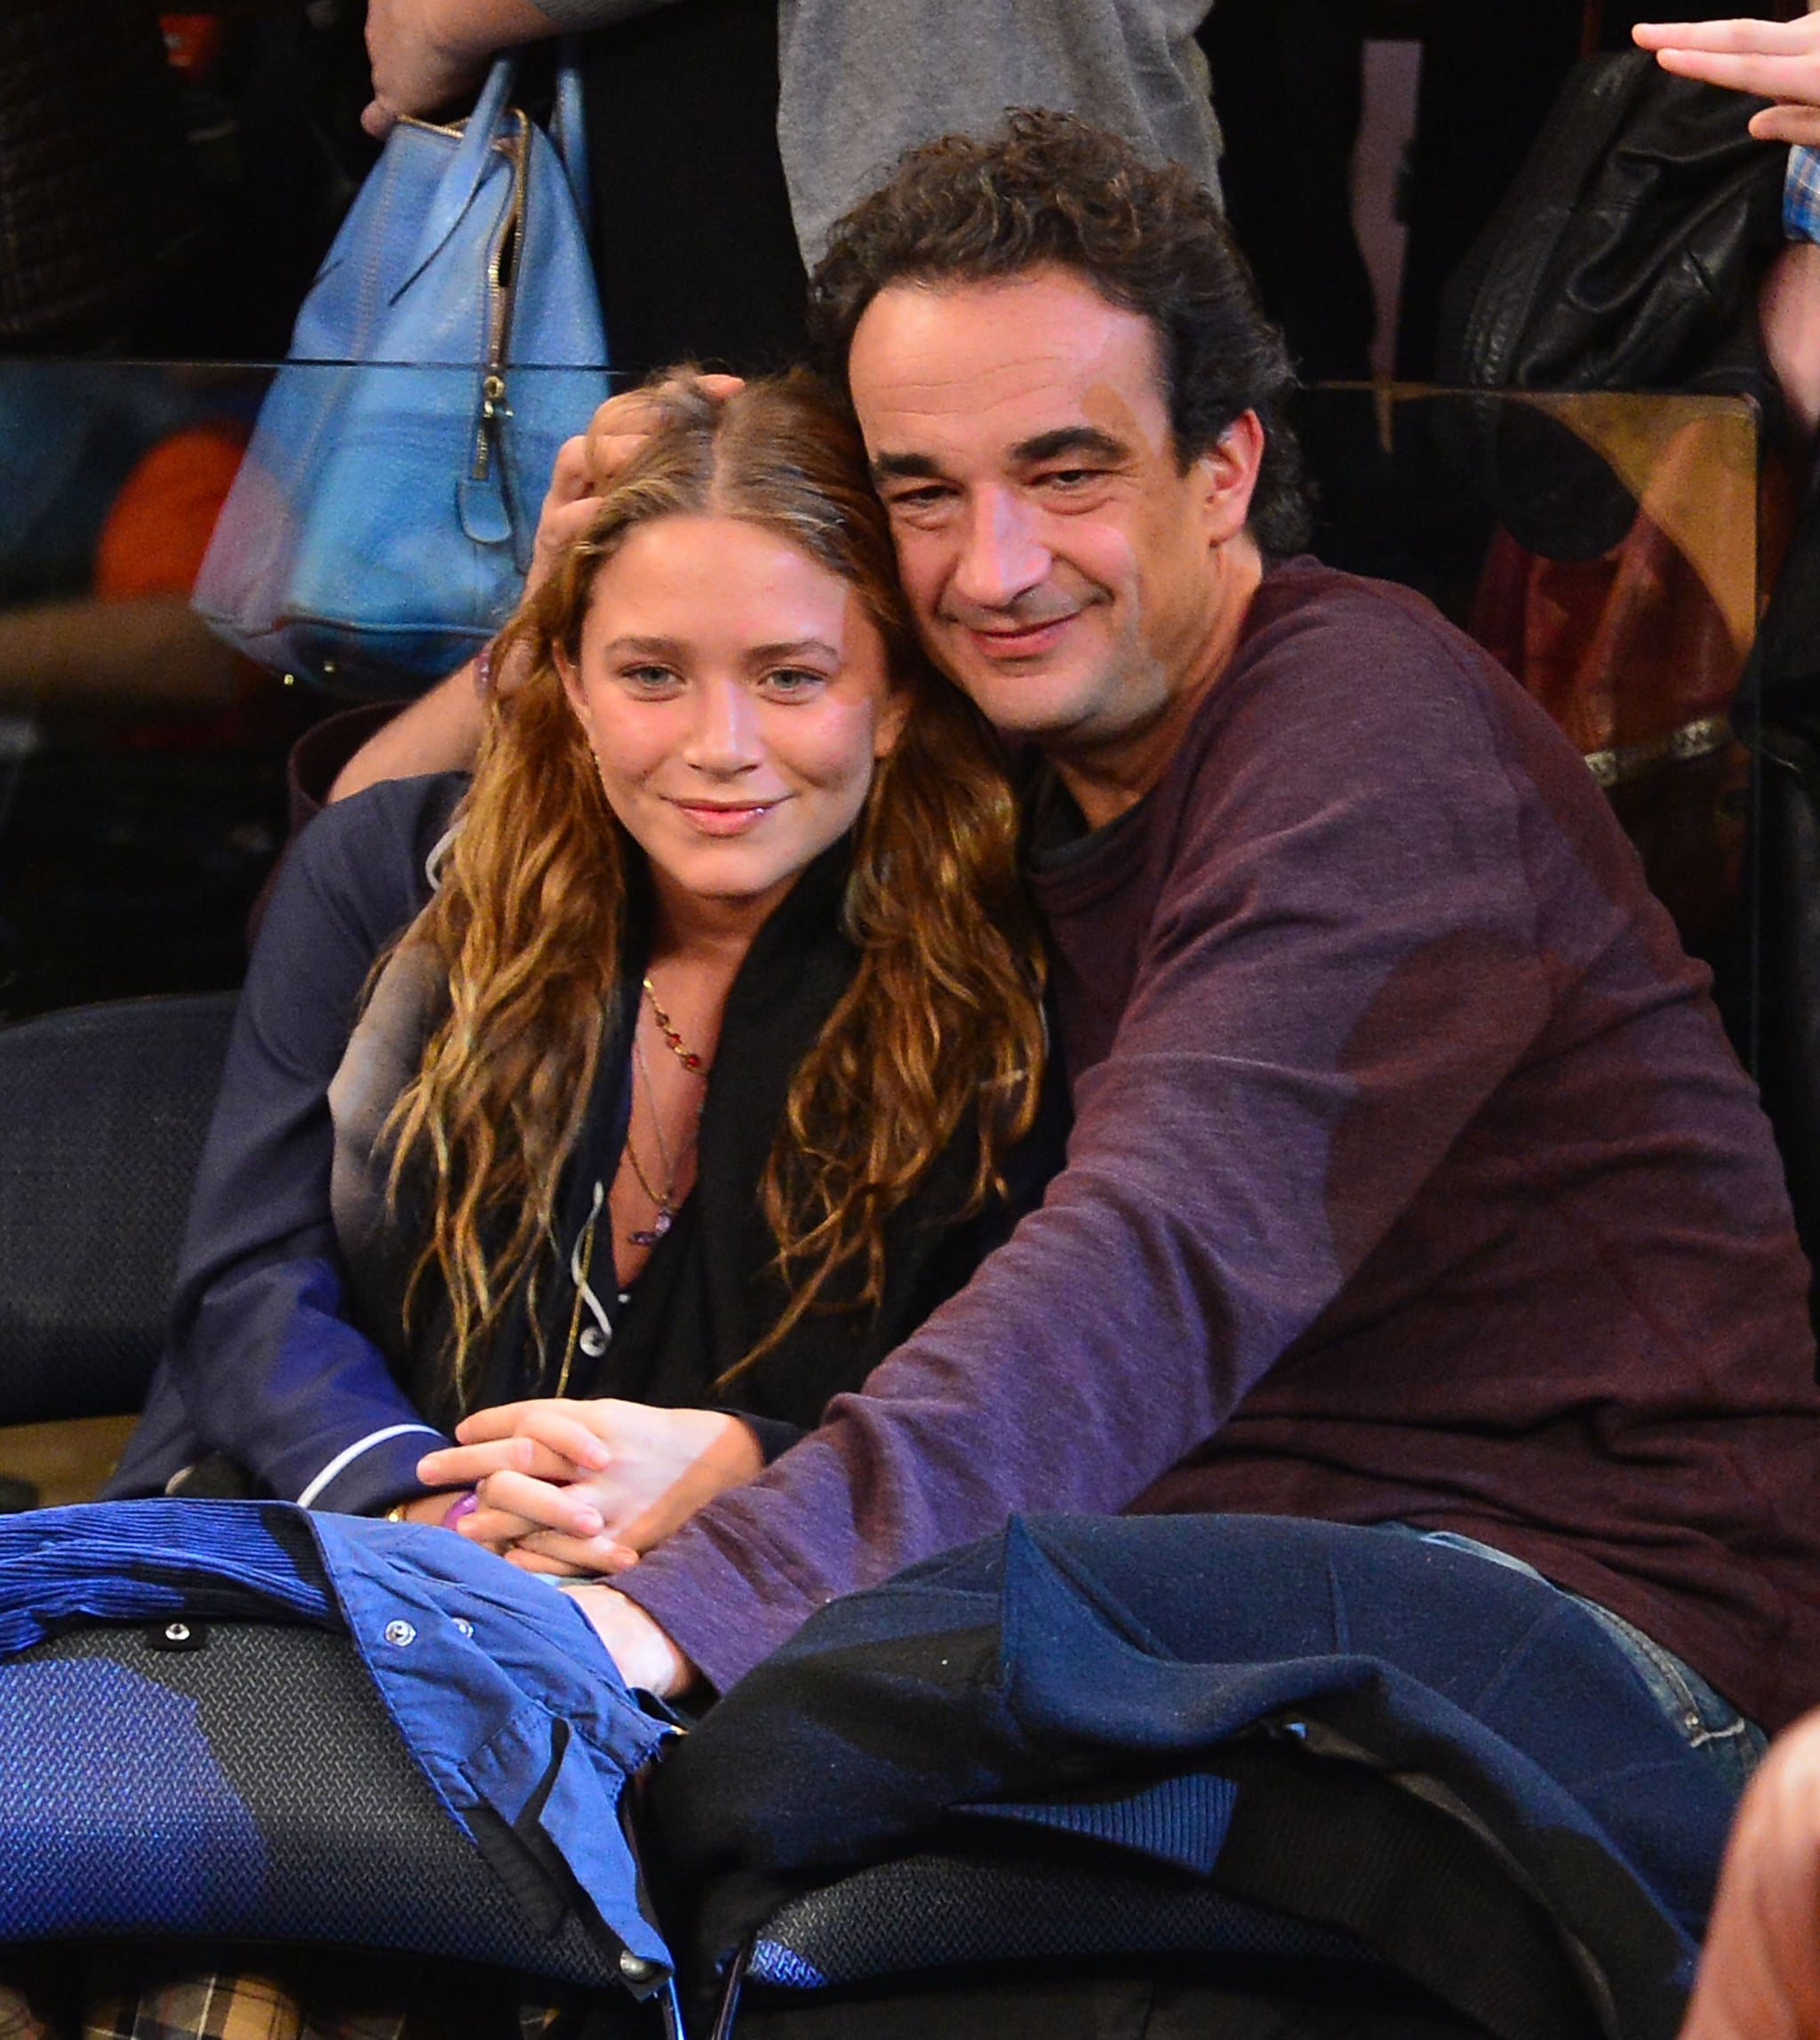 Mary kate olsen dating old man